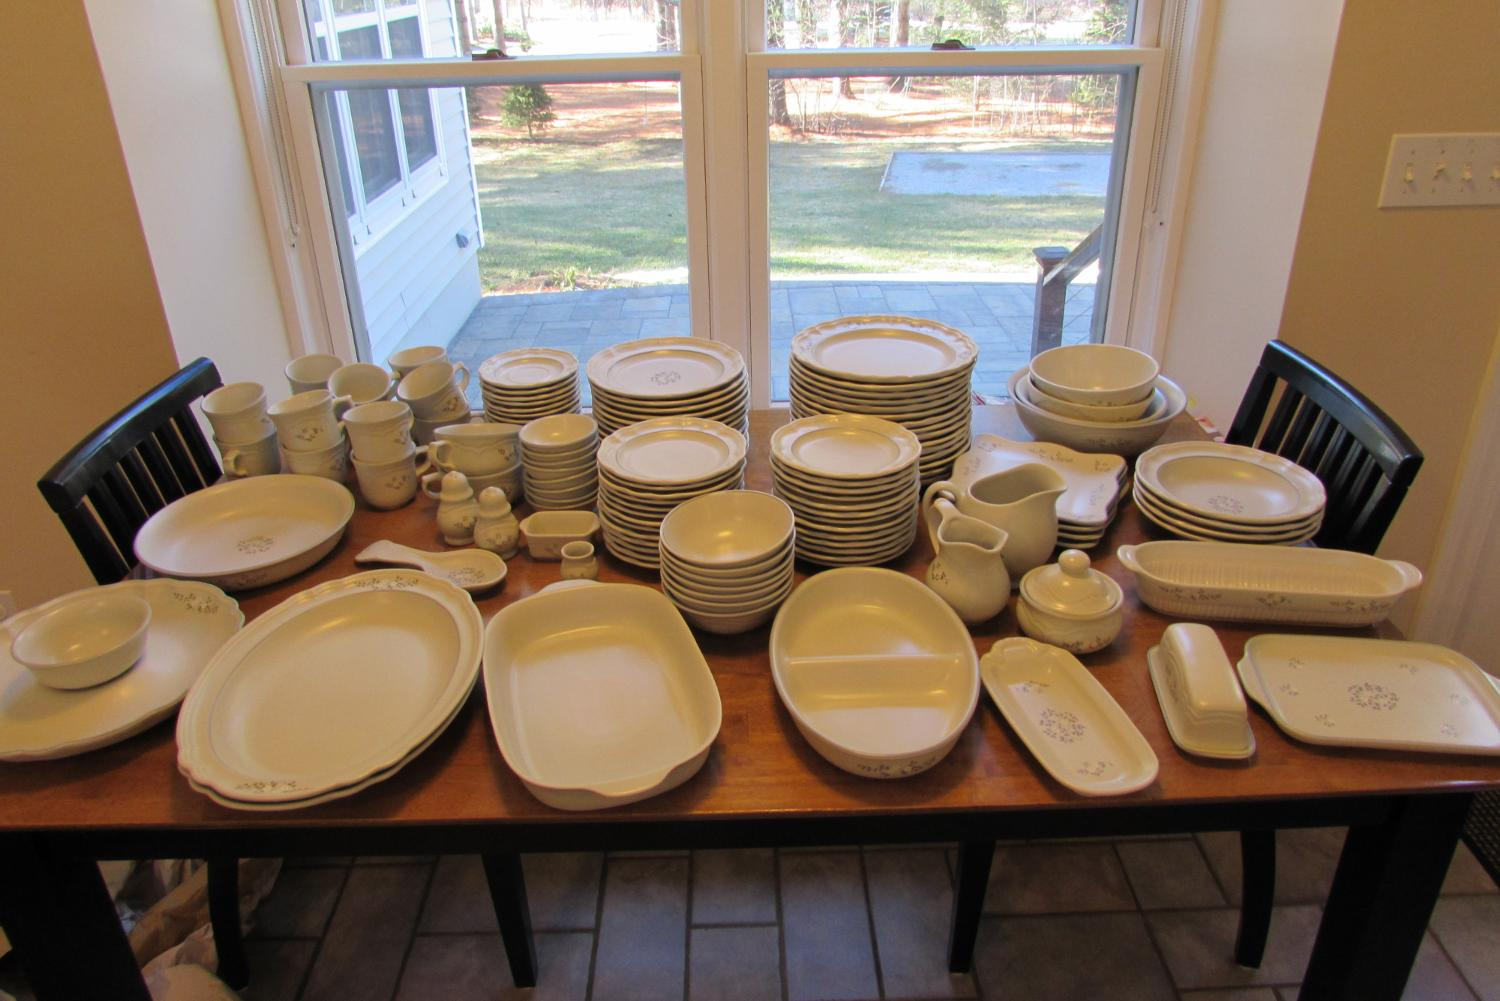 Best Pfaltzgraff Dishes - Retired Heirloom Pattern for sale in ...